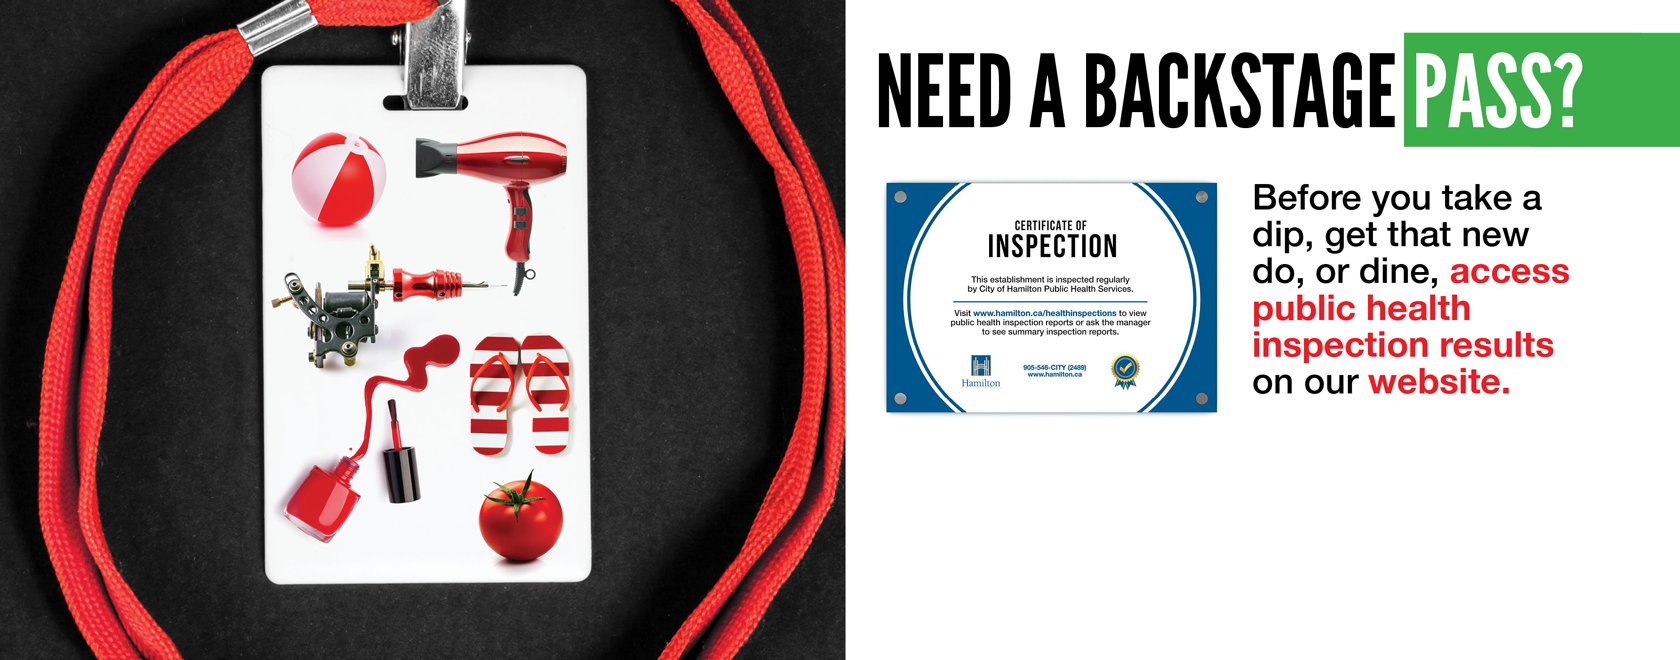 "Image of a pass on a lanyard with the text ""Need a back stage pass? Before you take a dip, get that new do, or dine, acces public health inspection results on our website."""